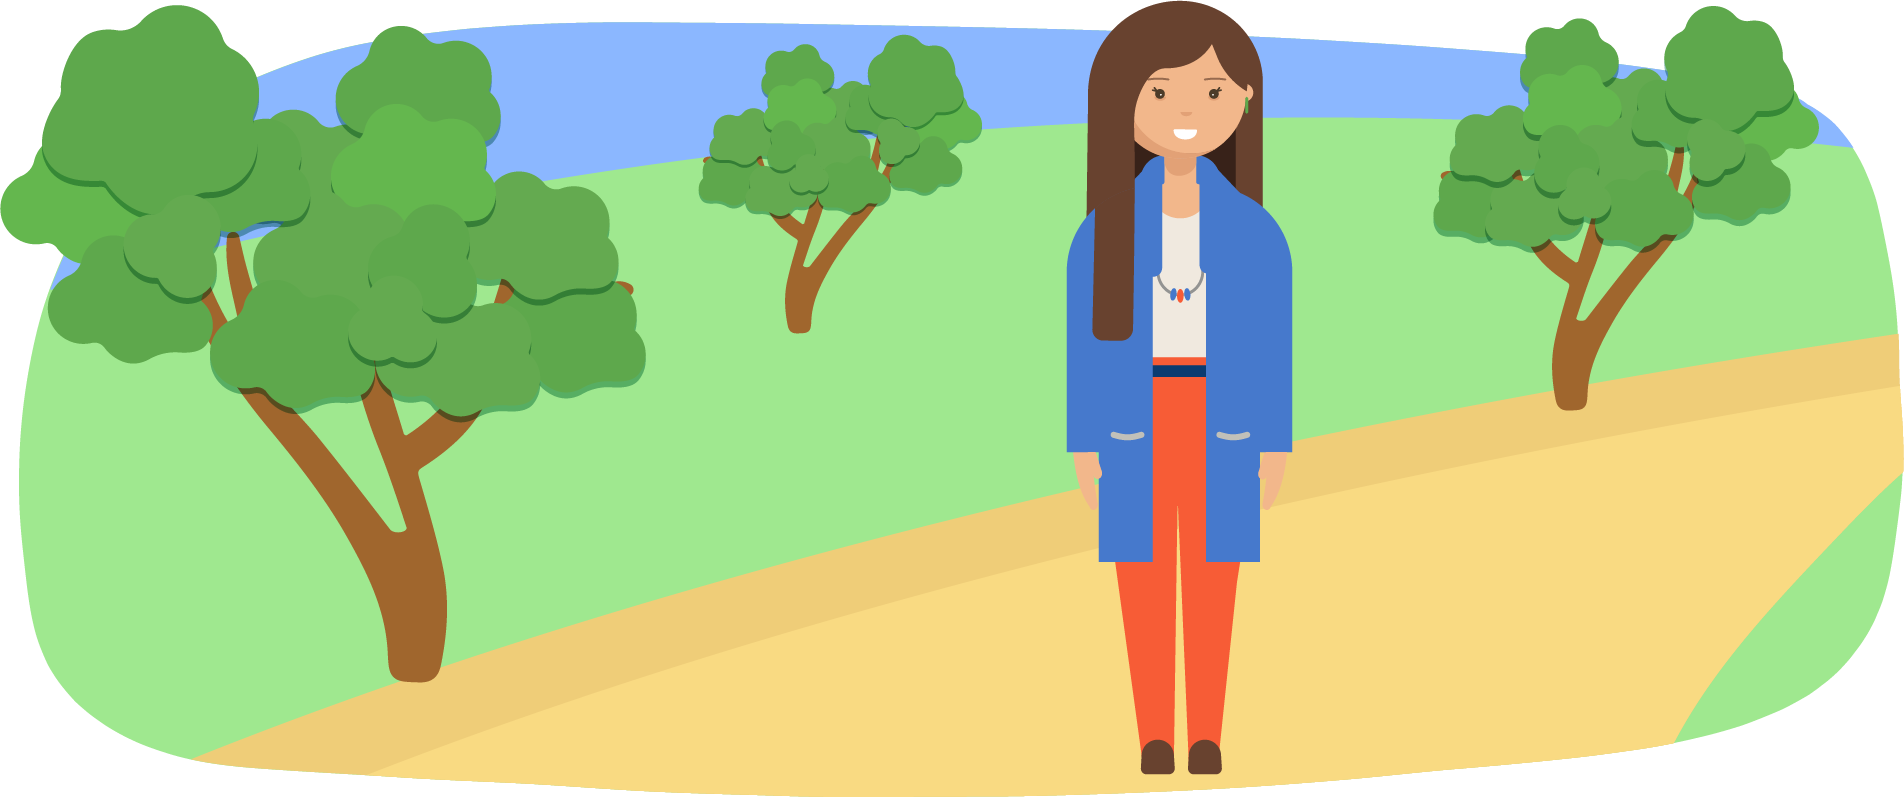 Woman standing on a path in a park